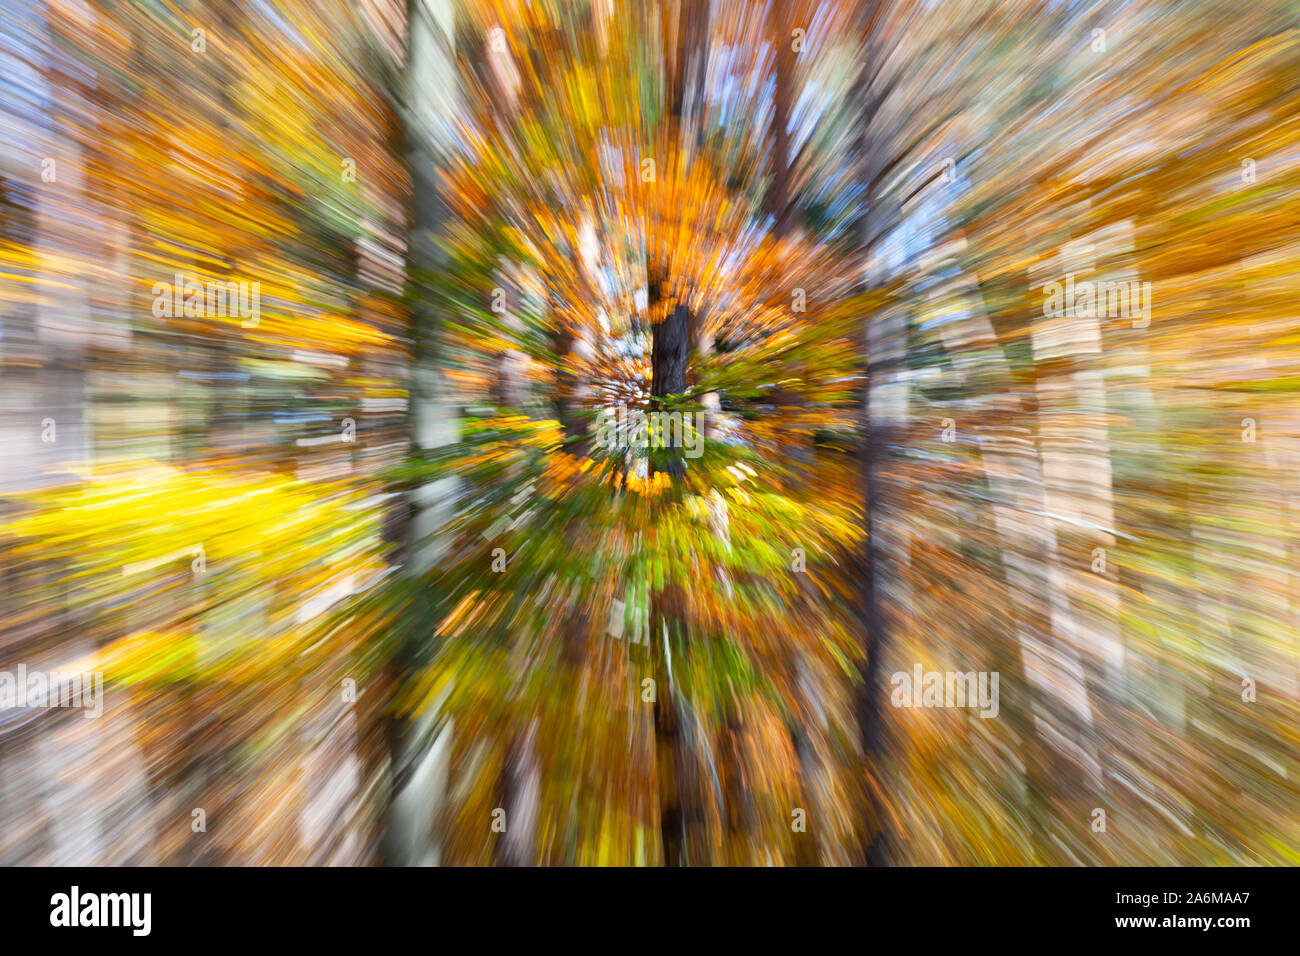 An abstract twist zoom blurred image of deciduous common beech trees in autumn / fall with colourful yellow and orange leaves in Austria, Europe Stock Photo